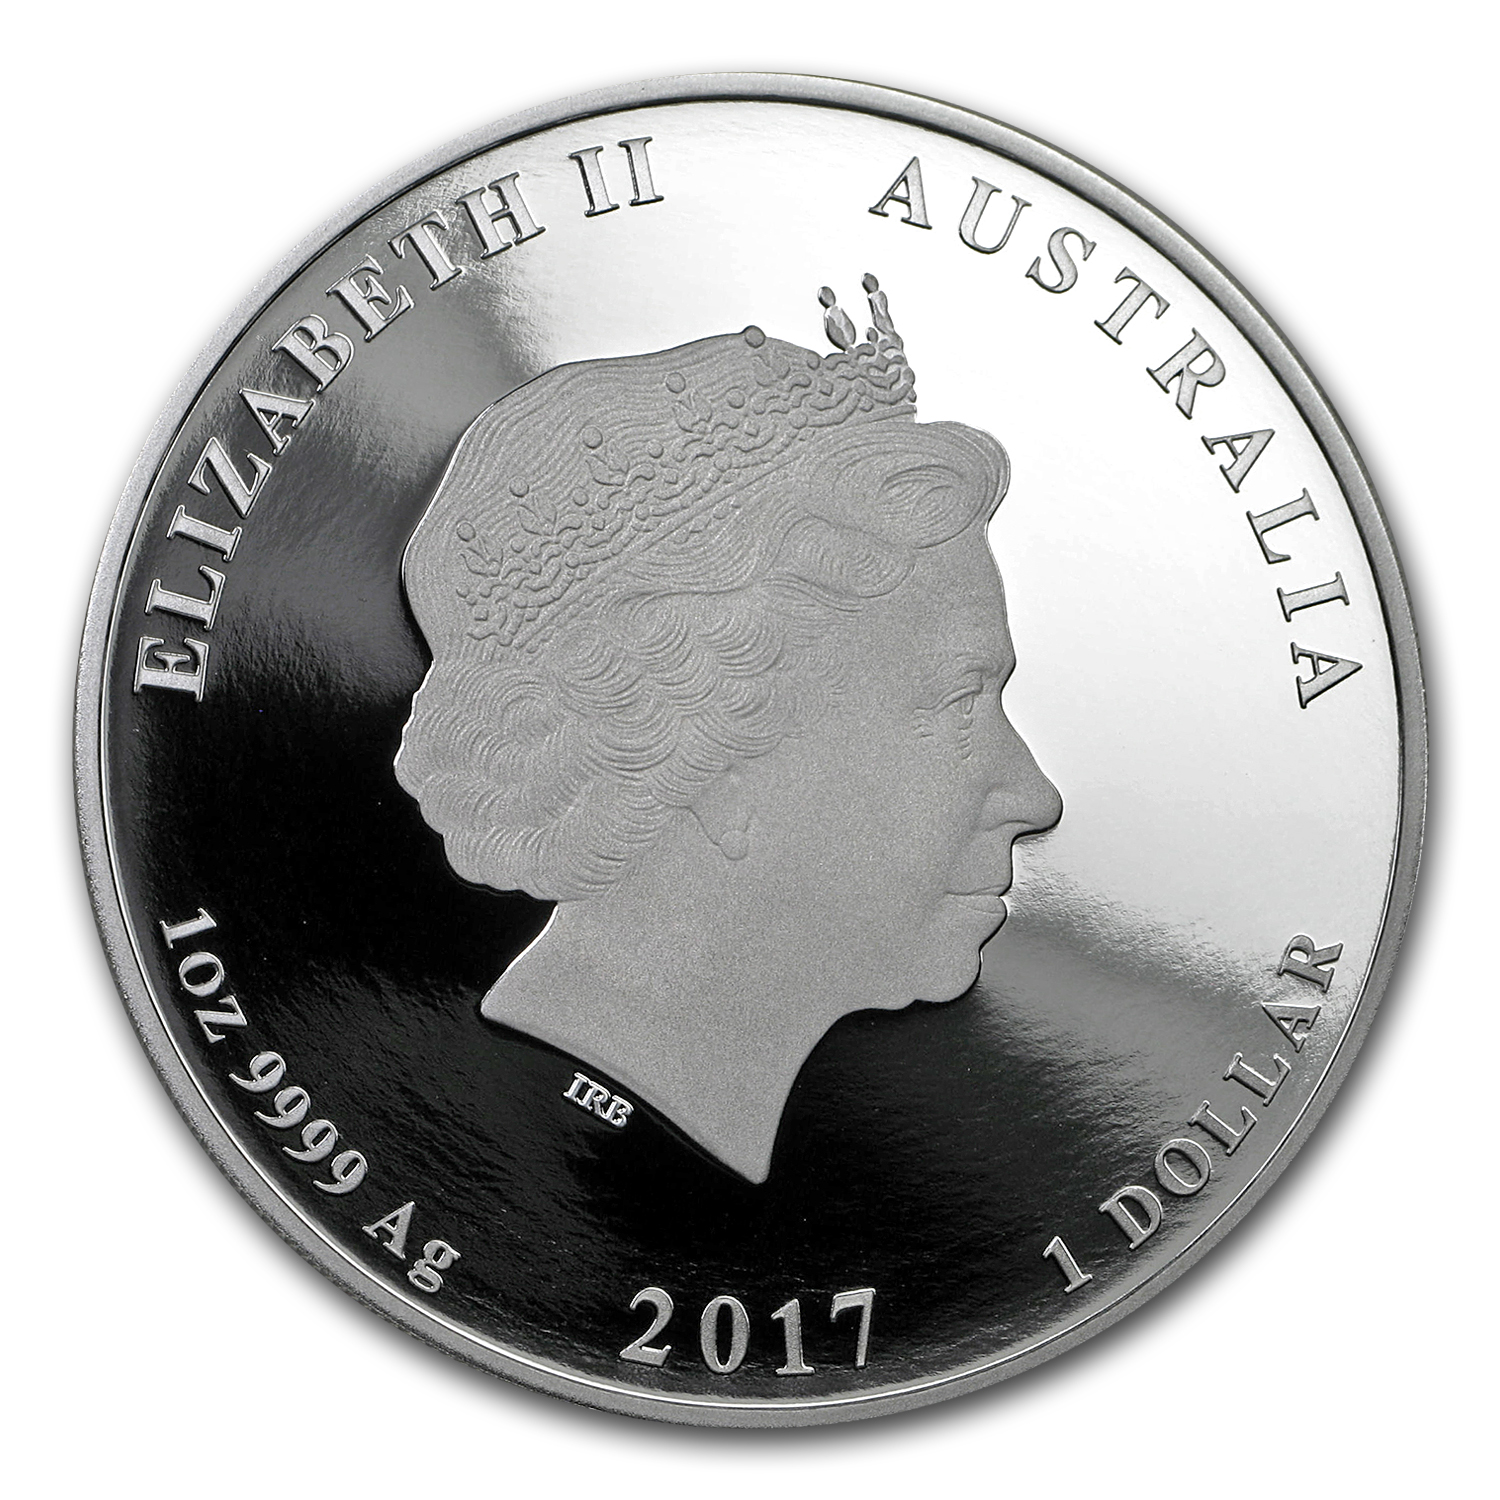 2017 Australia 1 oz Silver Lunar Rooster Proof (Colorized)